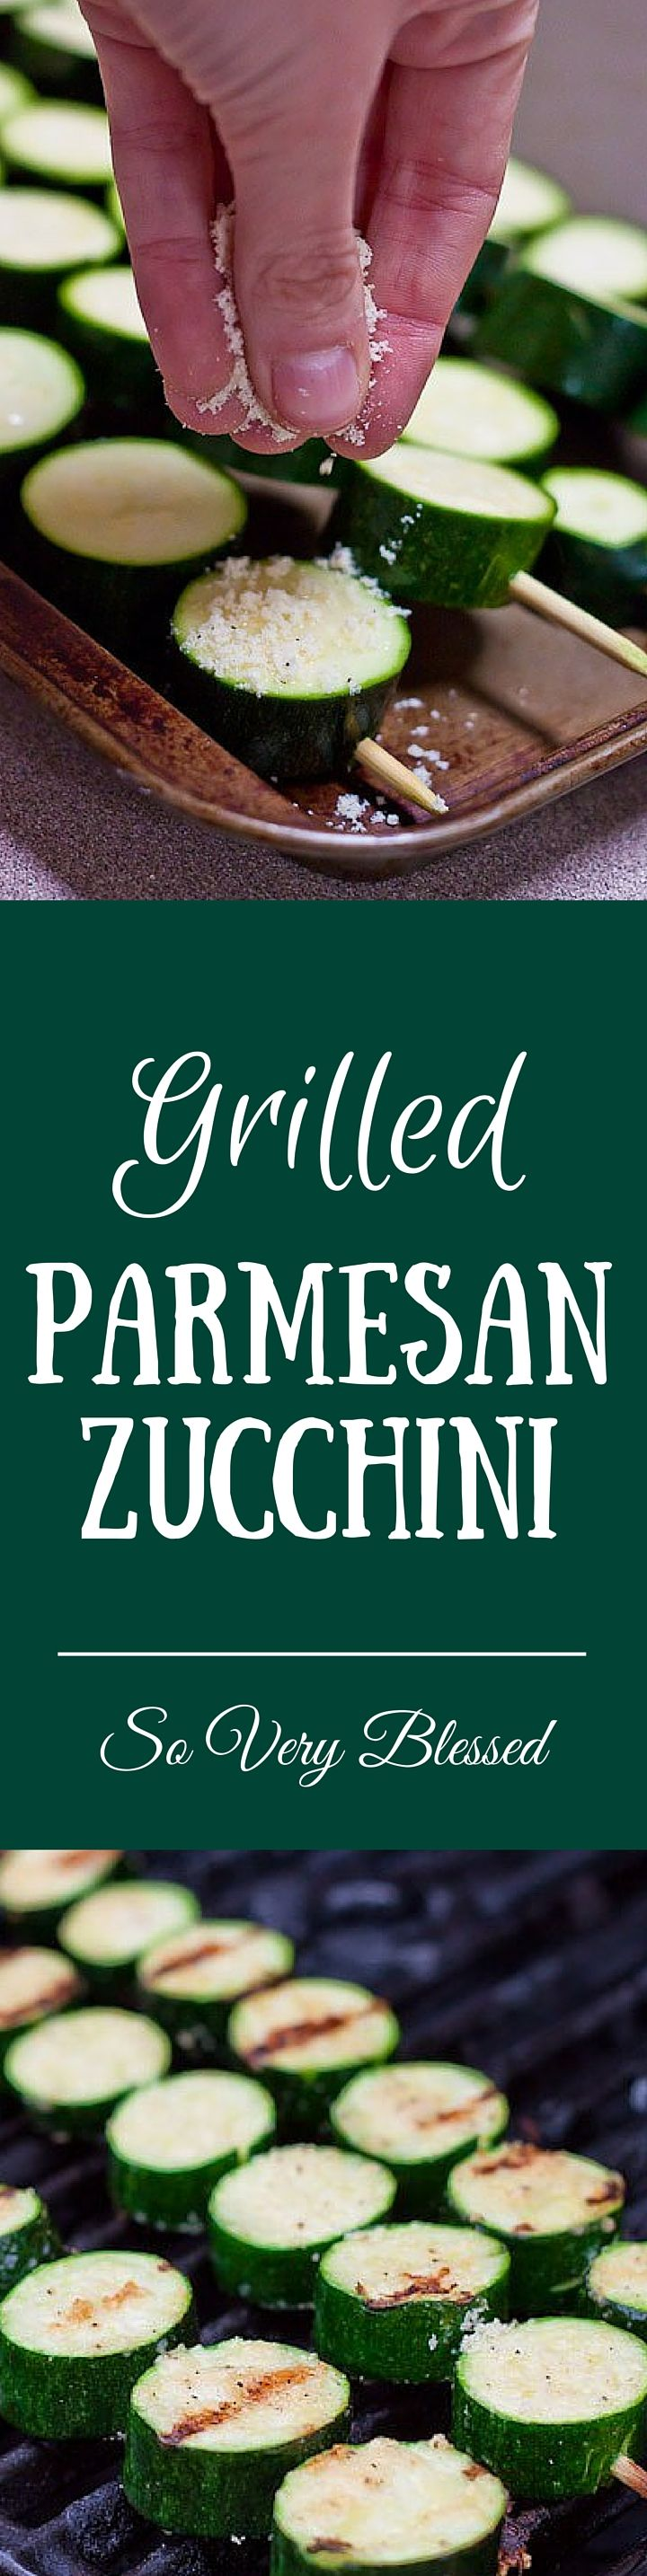 Toss some of these on the grill tonight! | SoVeryBlessed.com #grilling #summer #zucchini